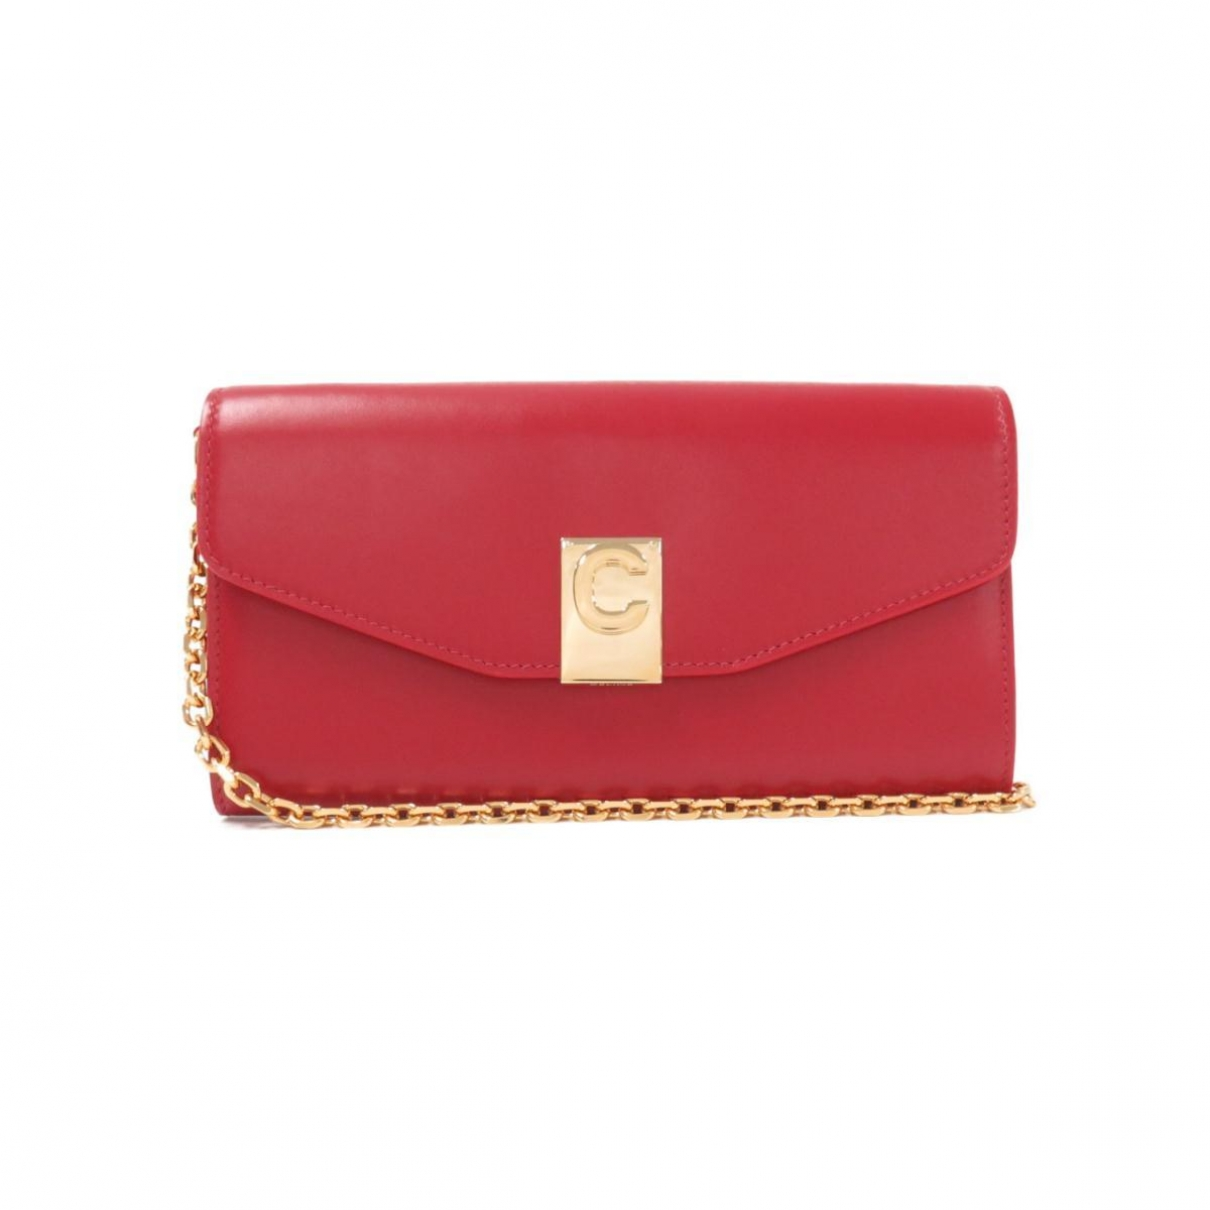 Celine \N Clutch in  Rot Leder